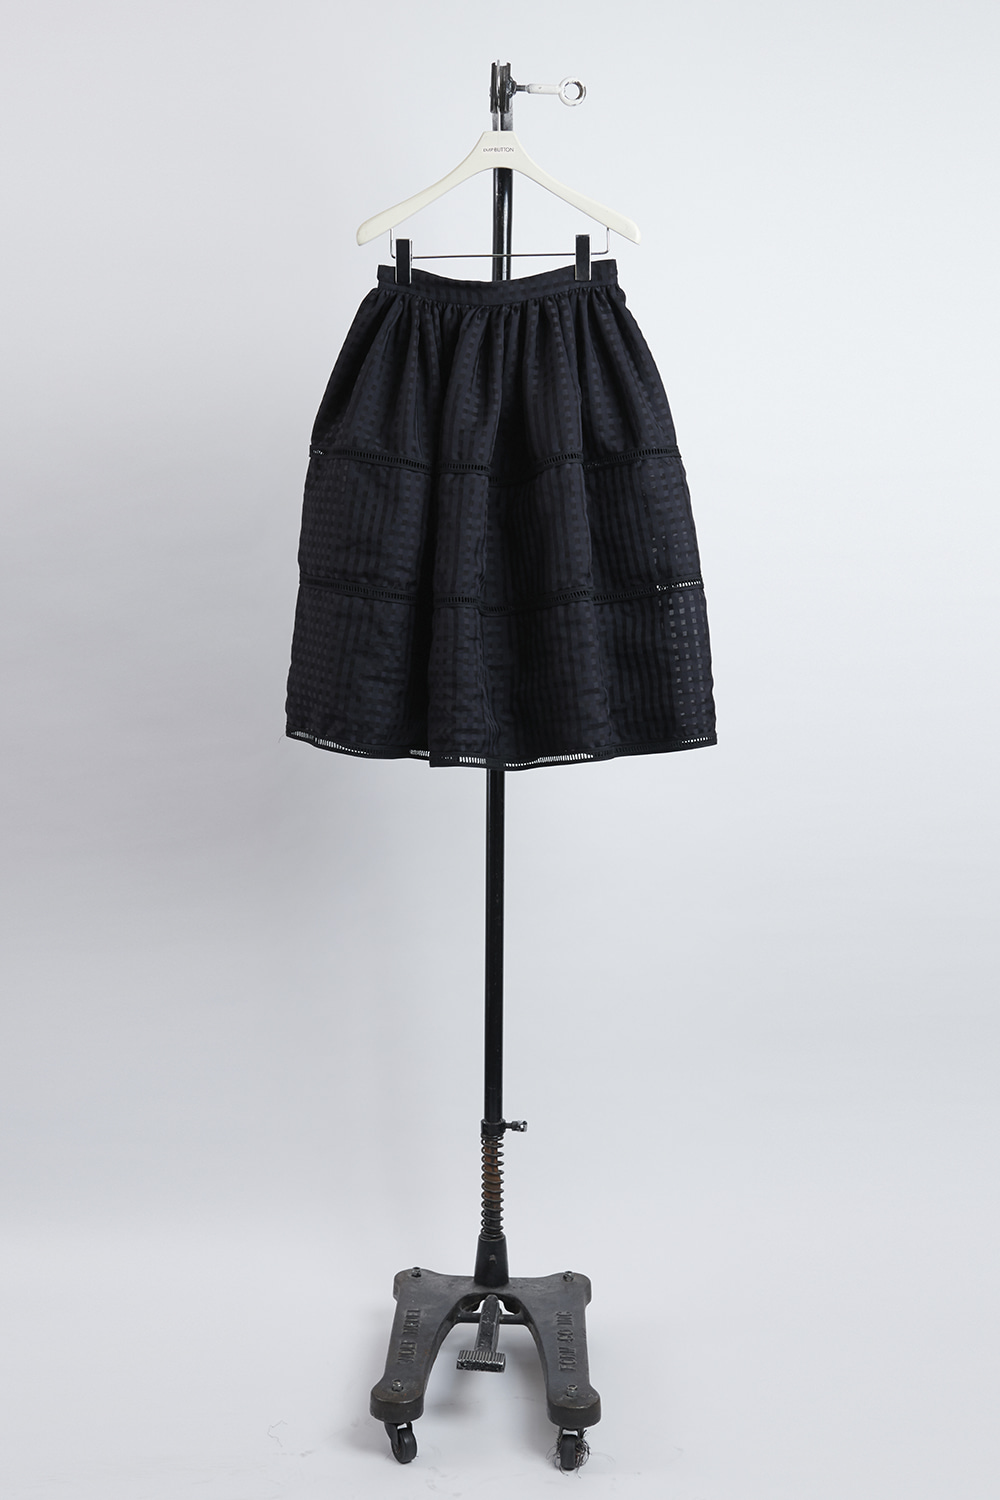 HS21 BLACK SEE-THROUGH SKIRT